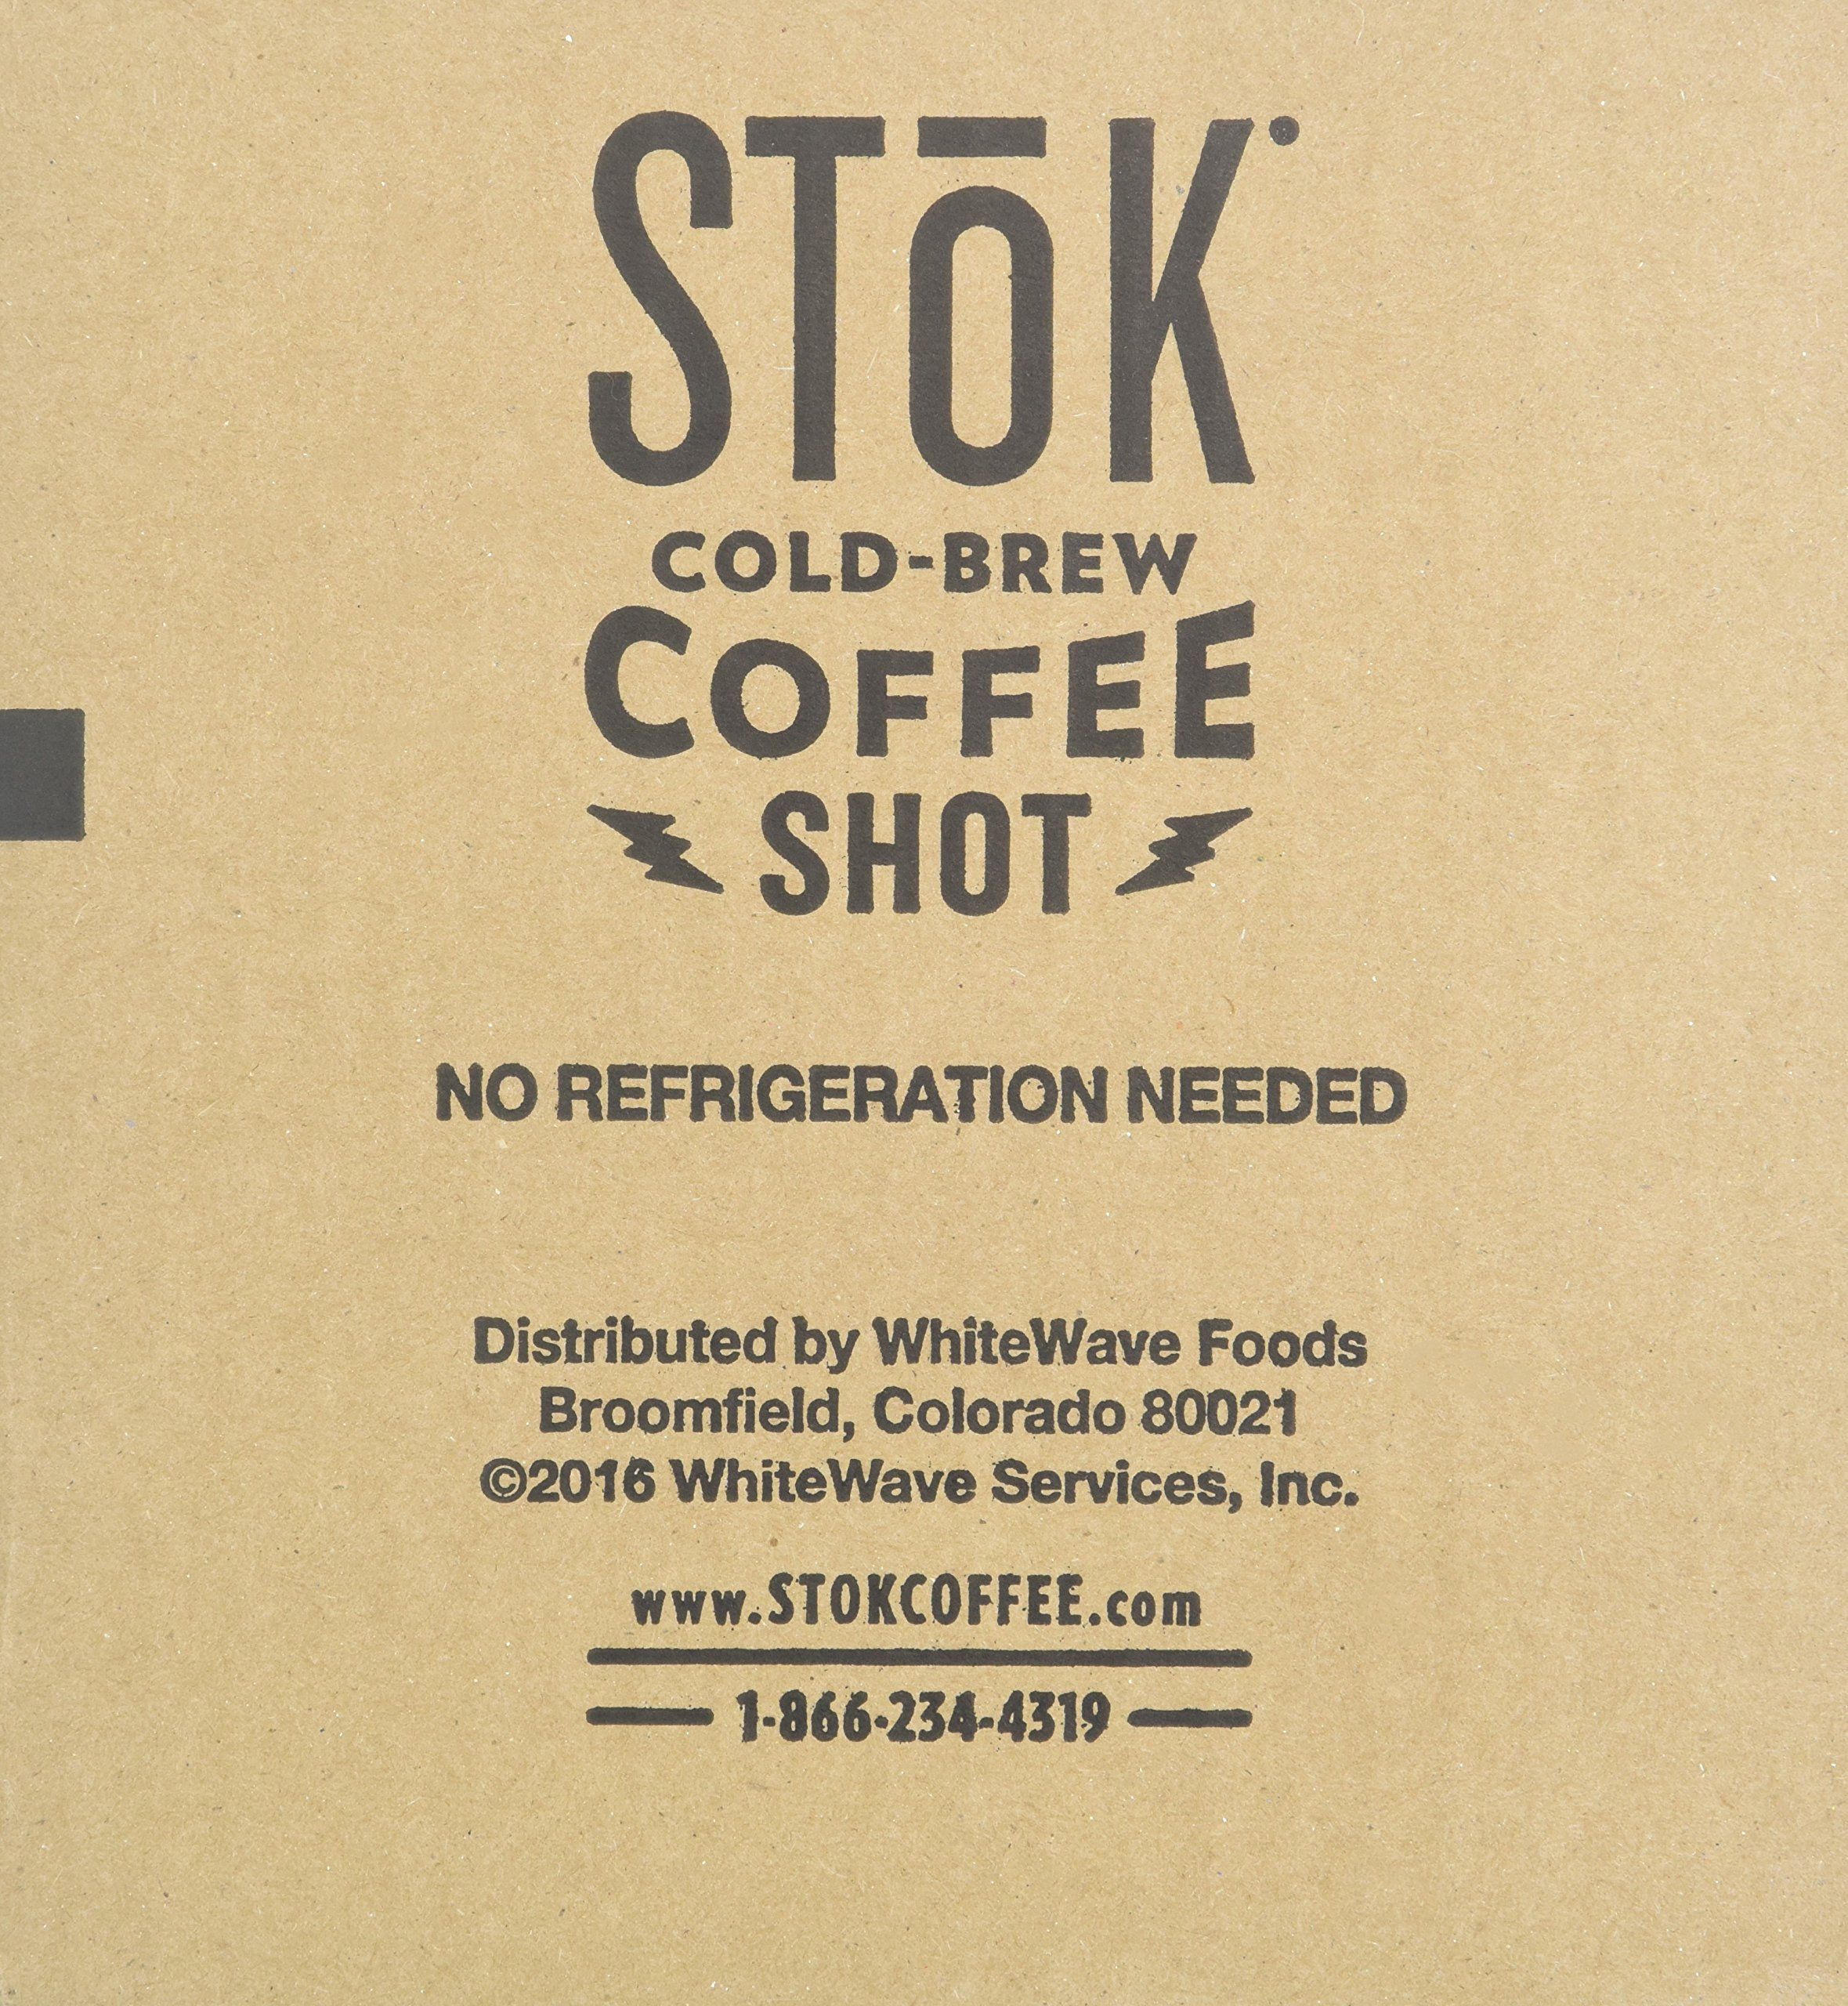 SToK Caffeinated Black Coffee Shots, 264 Single-Serving Shots, Single-Serve Shot of Unsweetened Coffee, Add to Coffee for Extra Caffeine, 40mg Caffeine (Packaging May vary) by SToK (Image #7)